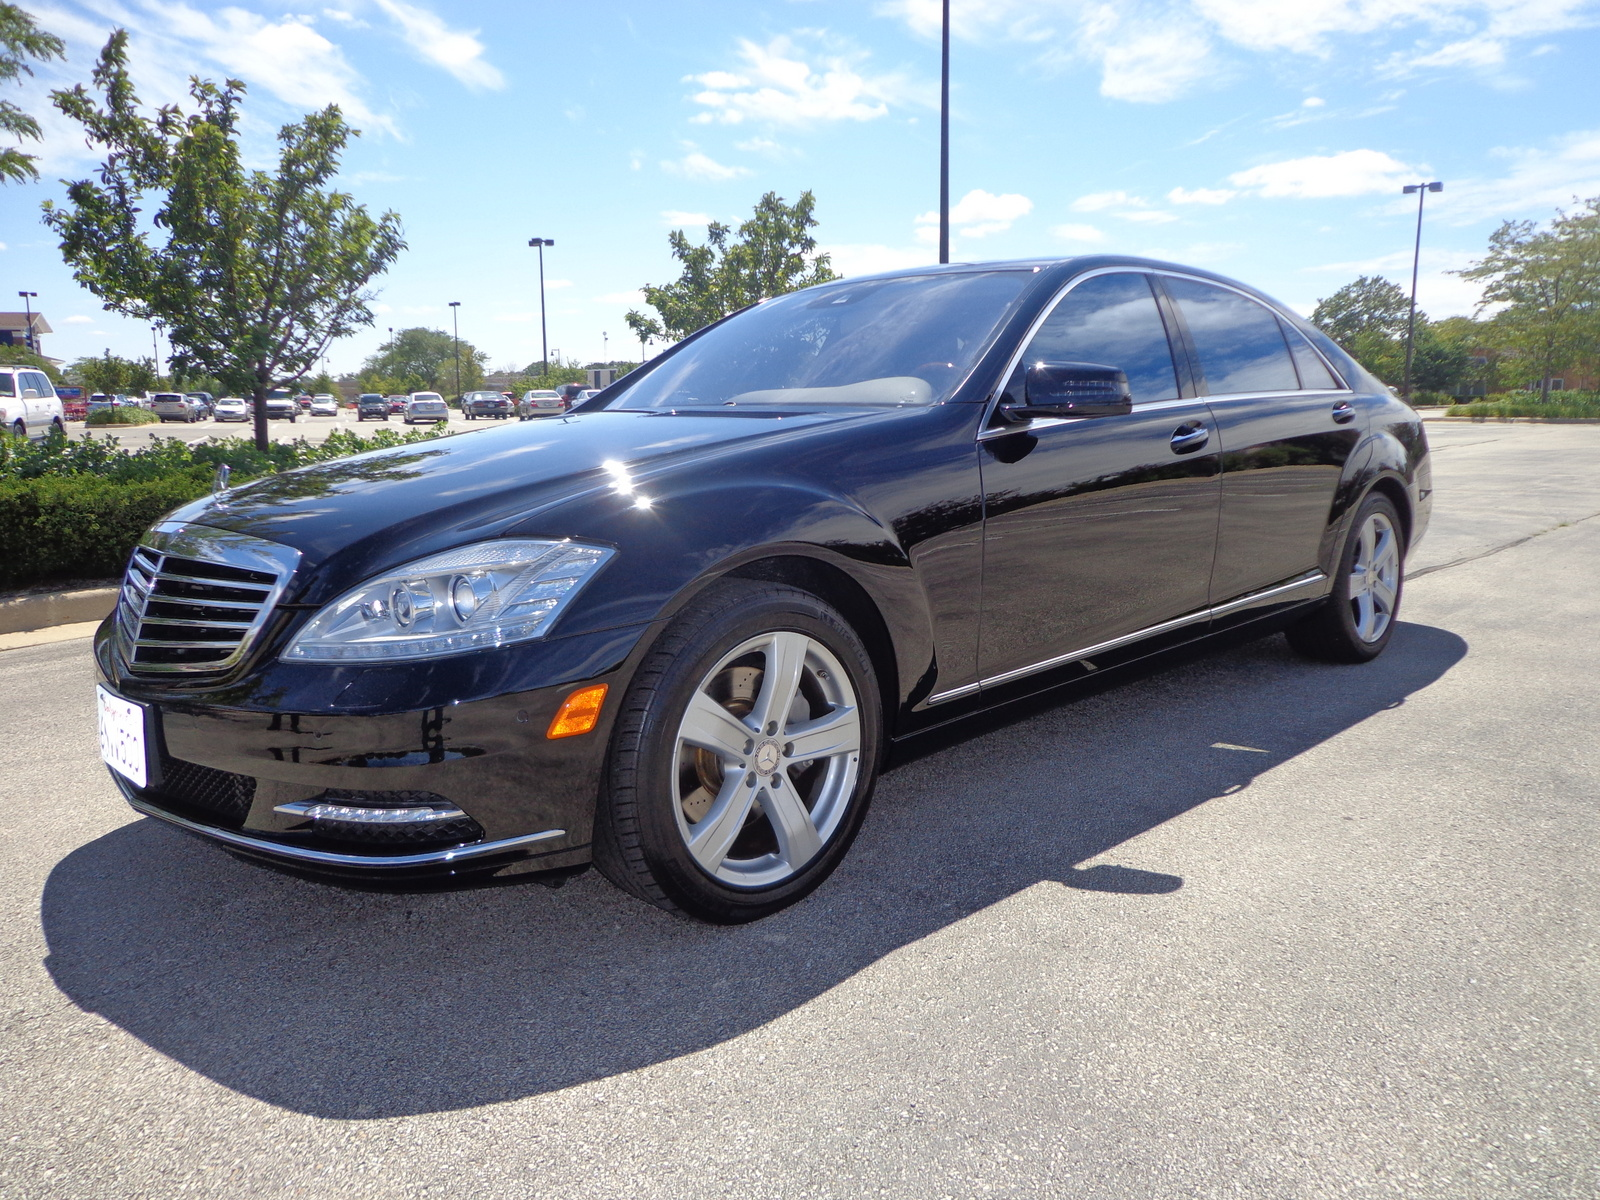 2010 mercedes benz s class pictures cargurus for 2010 mercedes benz s550